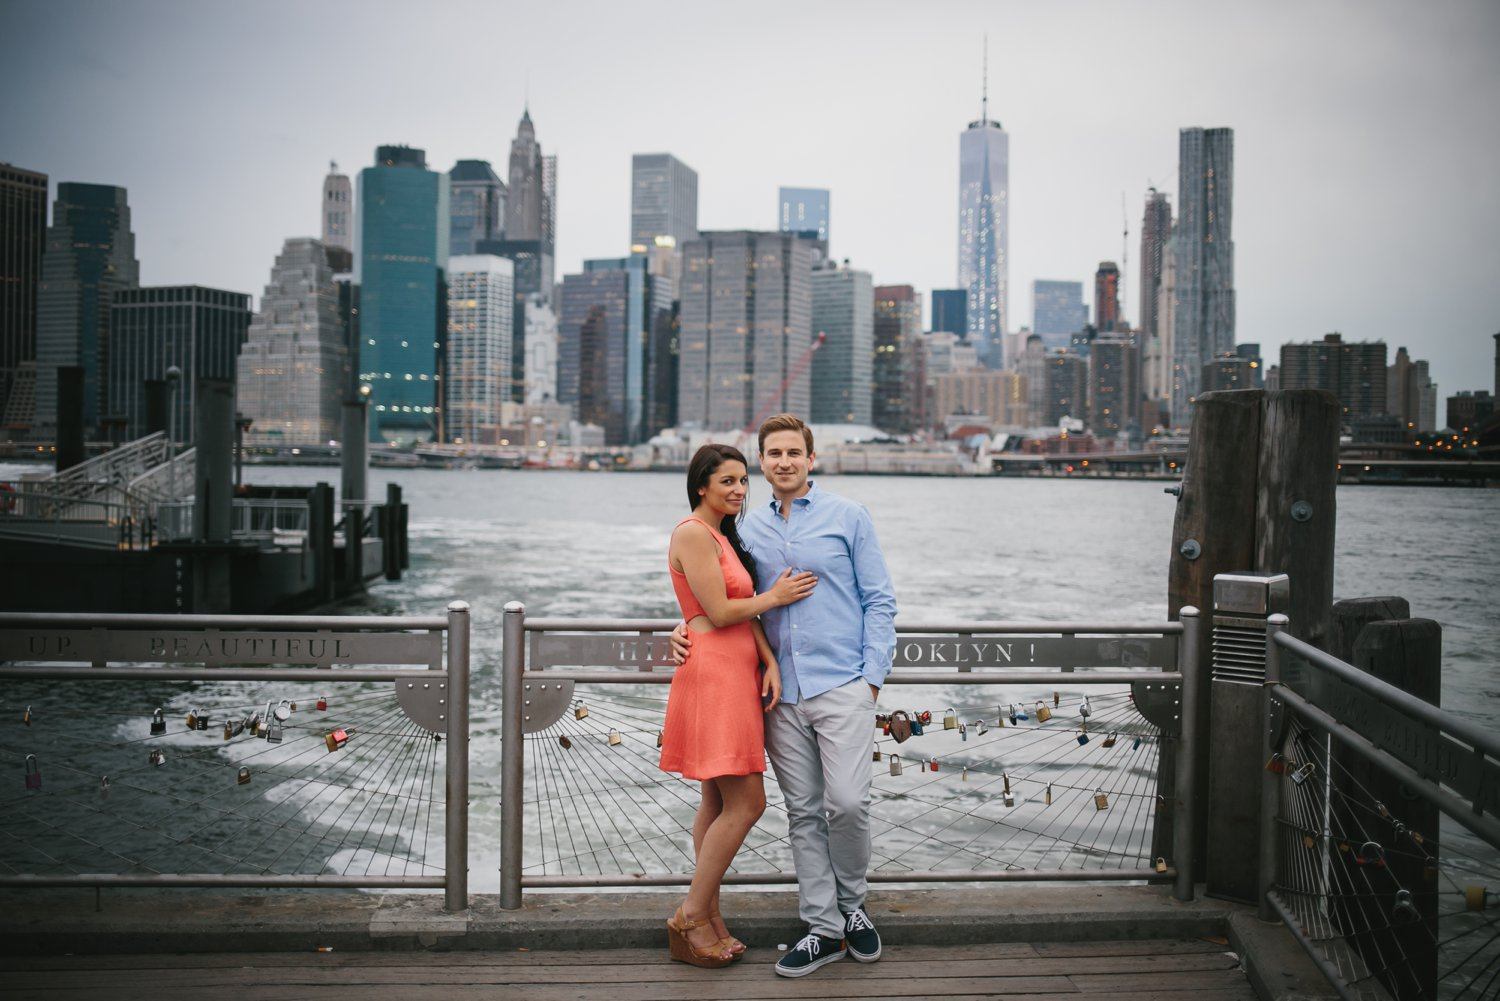 90NYC-NJ-ENGAGEMENT-PHOTOGRAPHY-BY-INTOTHESTORY-MOO-JAE.JPG